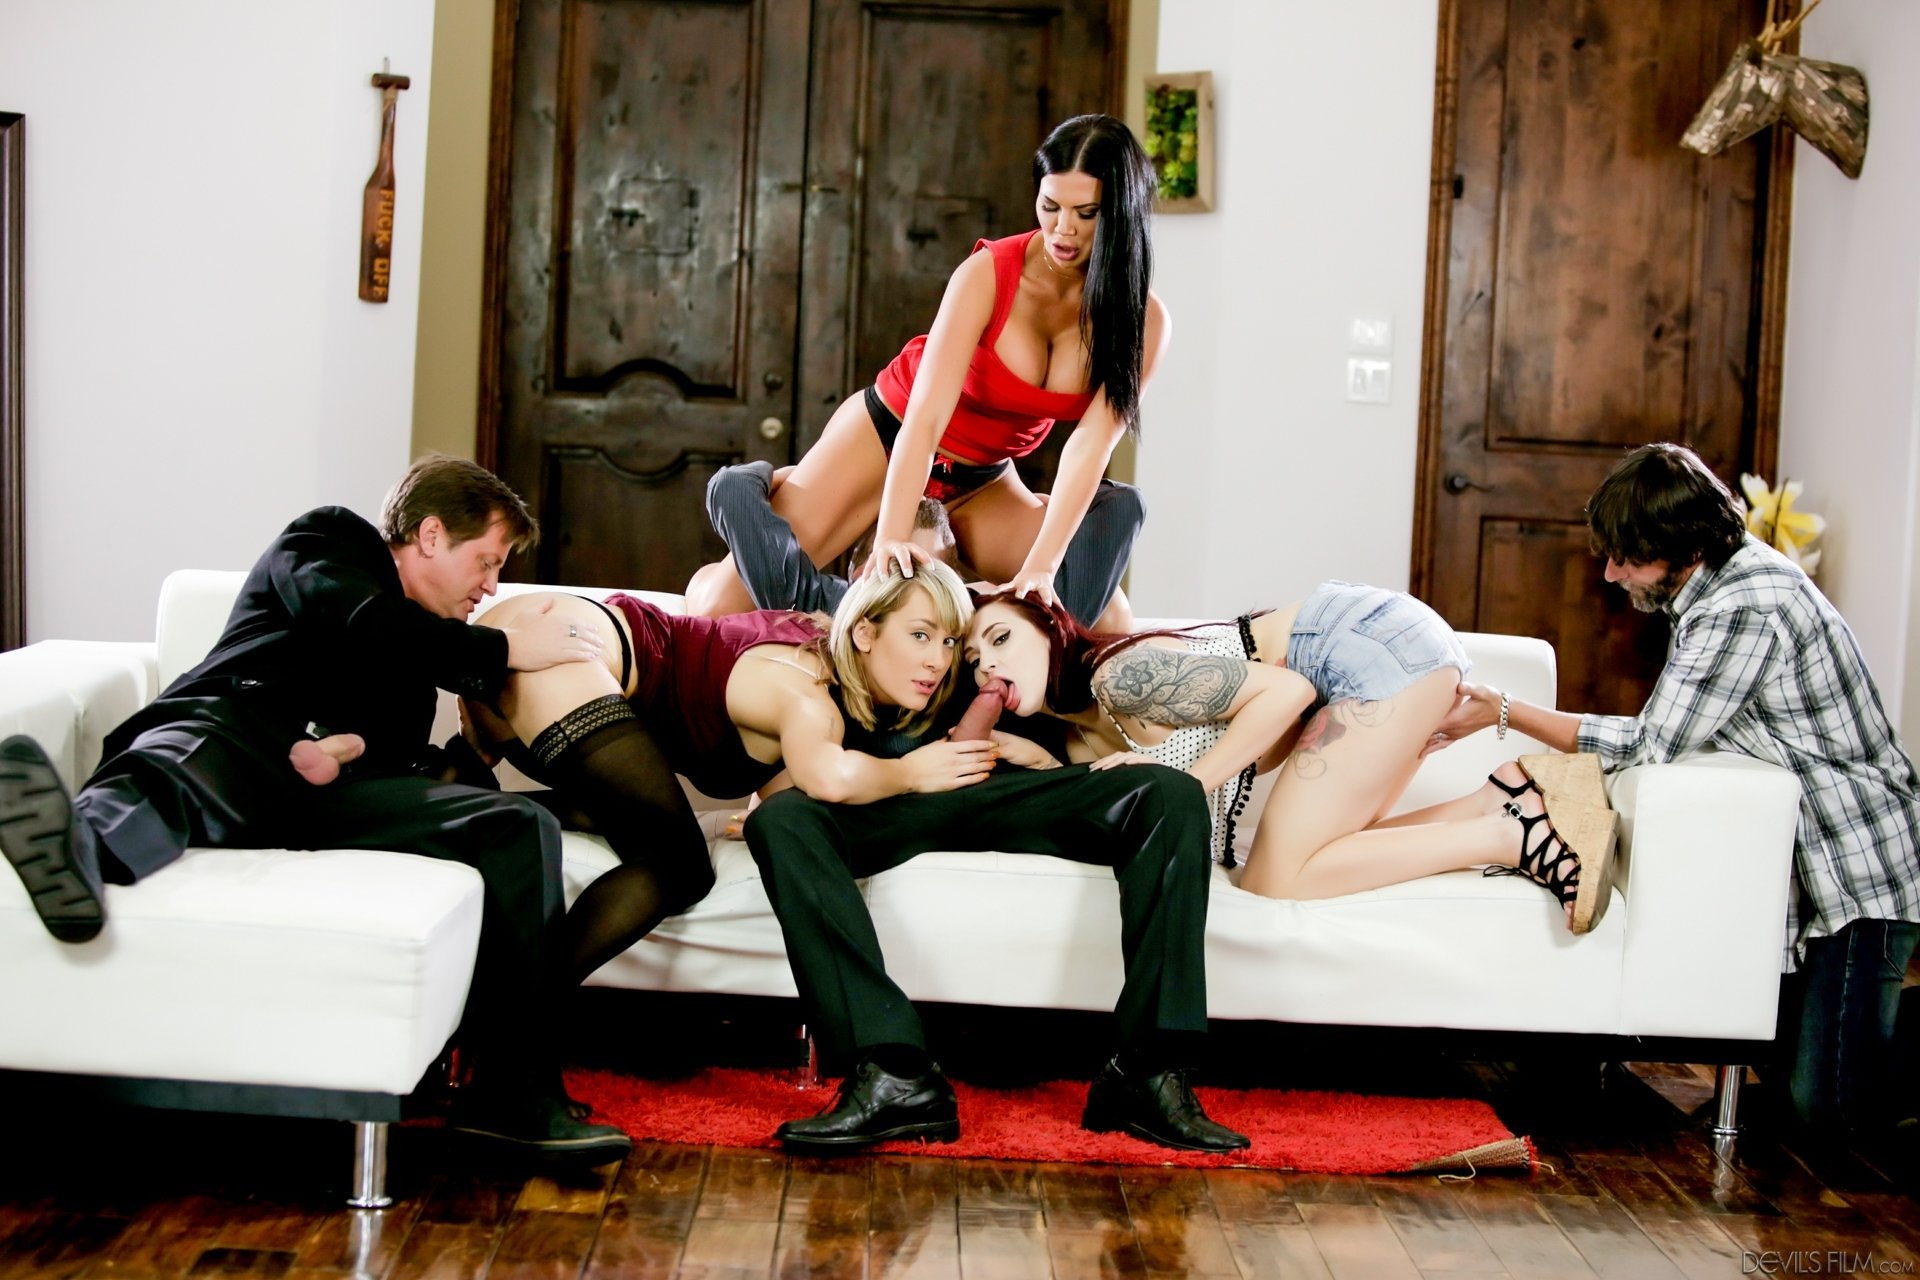 Xxx hd group sex #1